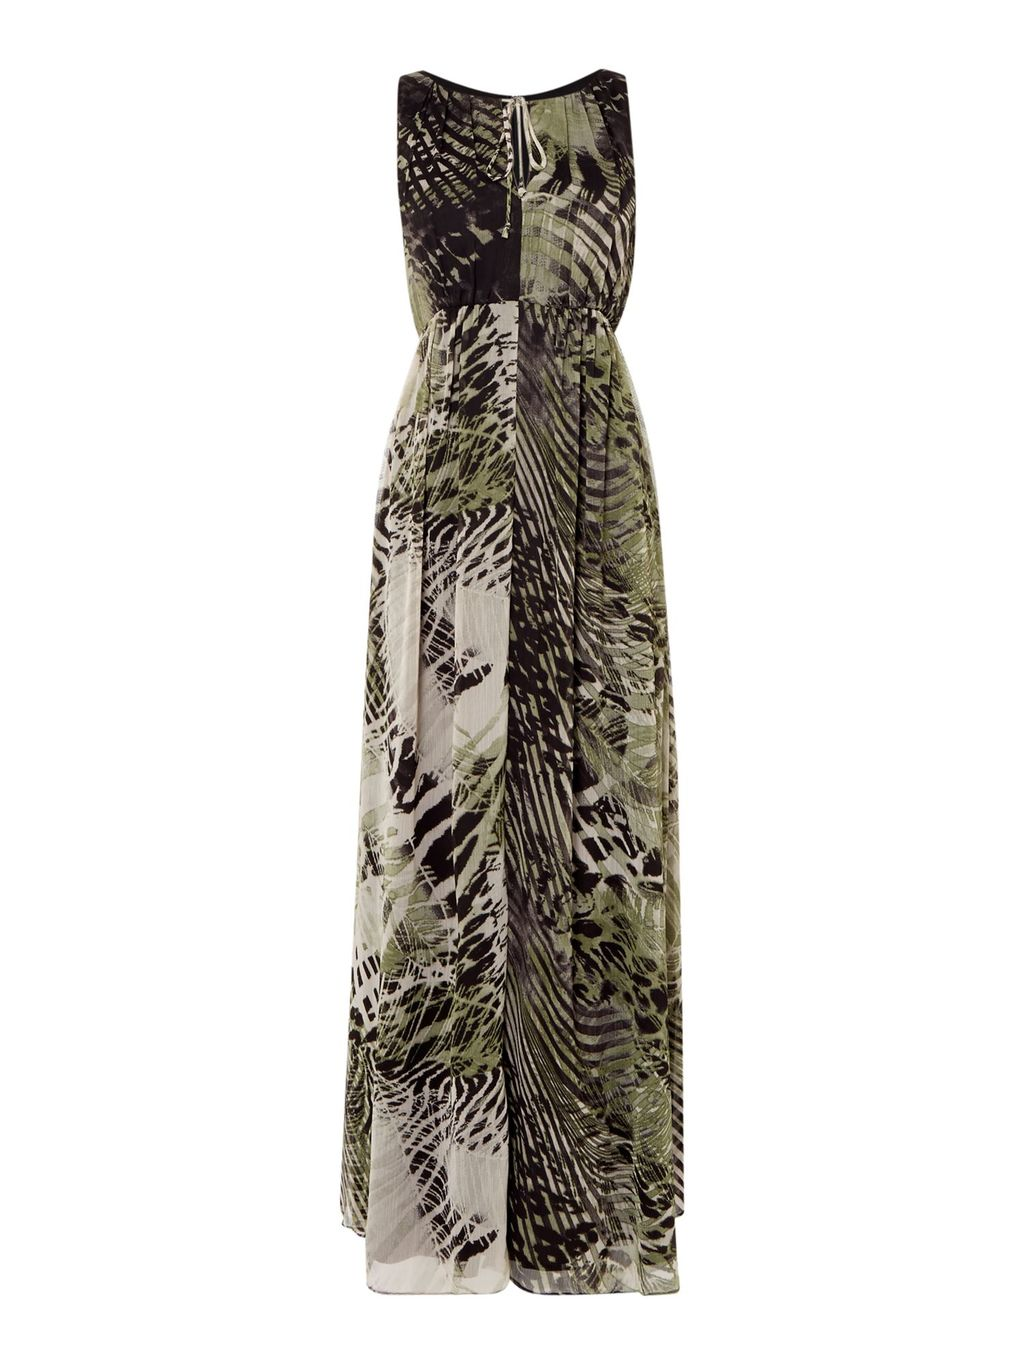 Sleeveless Printed Maxi Dress, Animal - sleeve style: sleeveless; style: maxi dress; secondary colour: ivory/cream; predominant colour: taupe; occasions: evening; length: floor length; fit: body skimming; fibres: polyester/polyamide - 100%; neckline: crew; sleeve length: sleeveless; pattern type: fabric; pattern: animal print; texture group: jersey - stretchy/drapey; multicoloured: multicoloured; season: s/s 2016; wardrobe: event